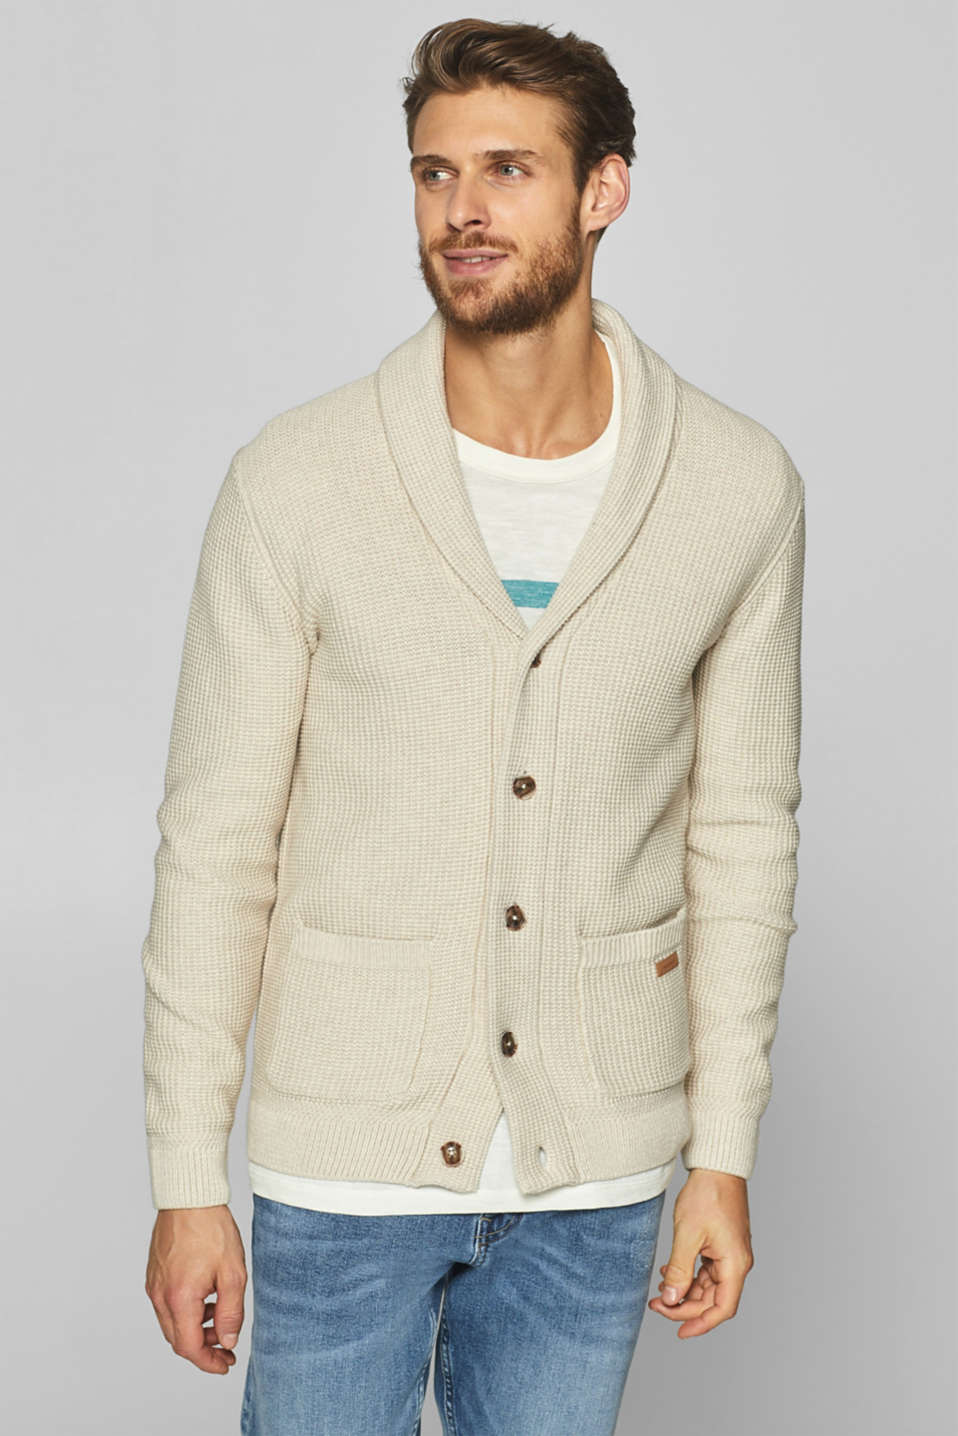 Esprit - Textured cardigan in 100% cotton